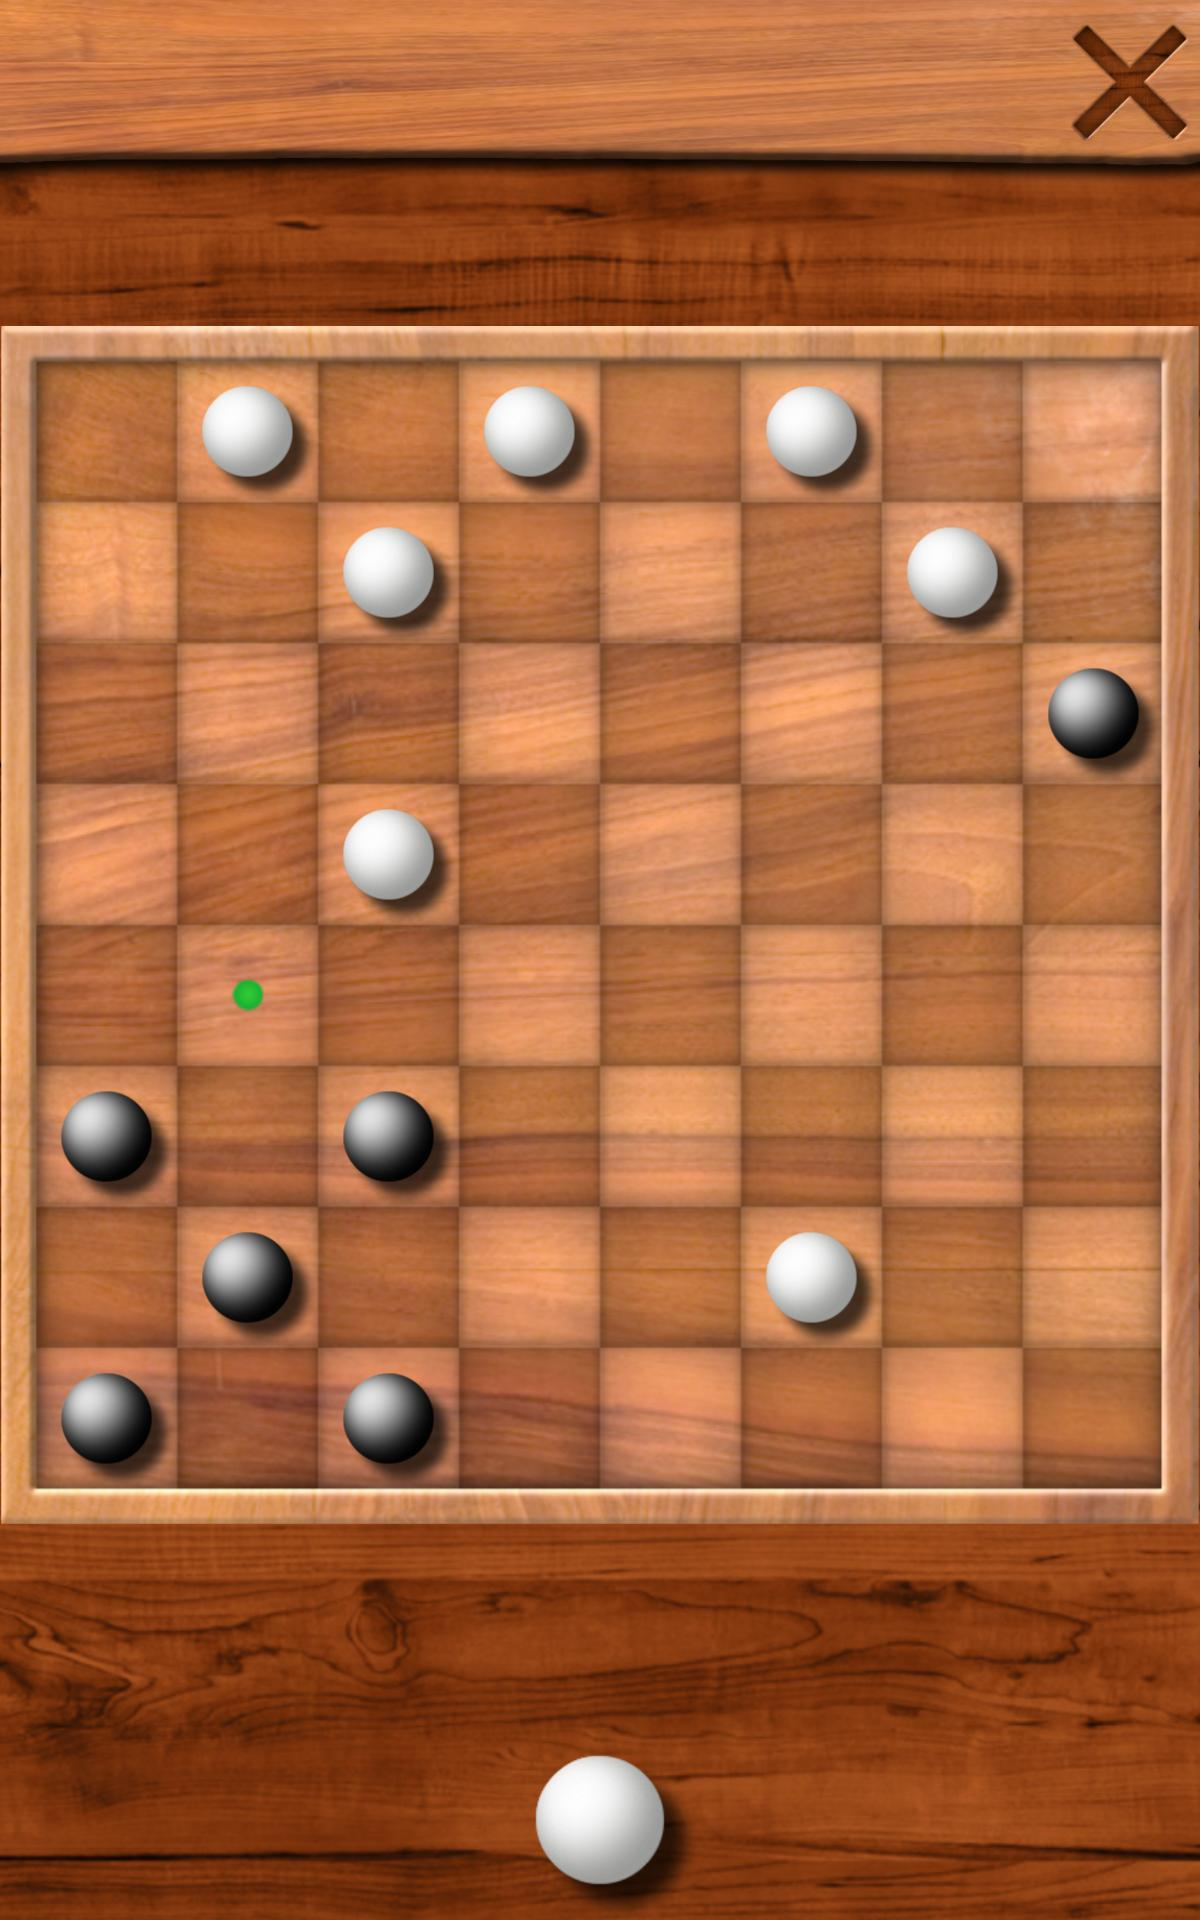 Free Classic 4 - The famous board games 2.1.6 Screenshot 8